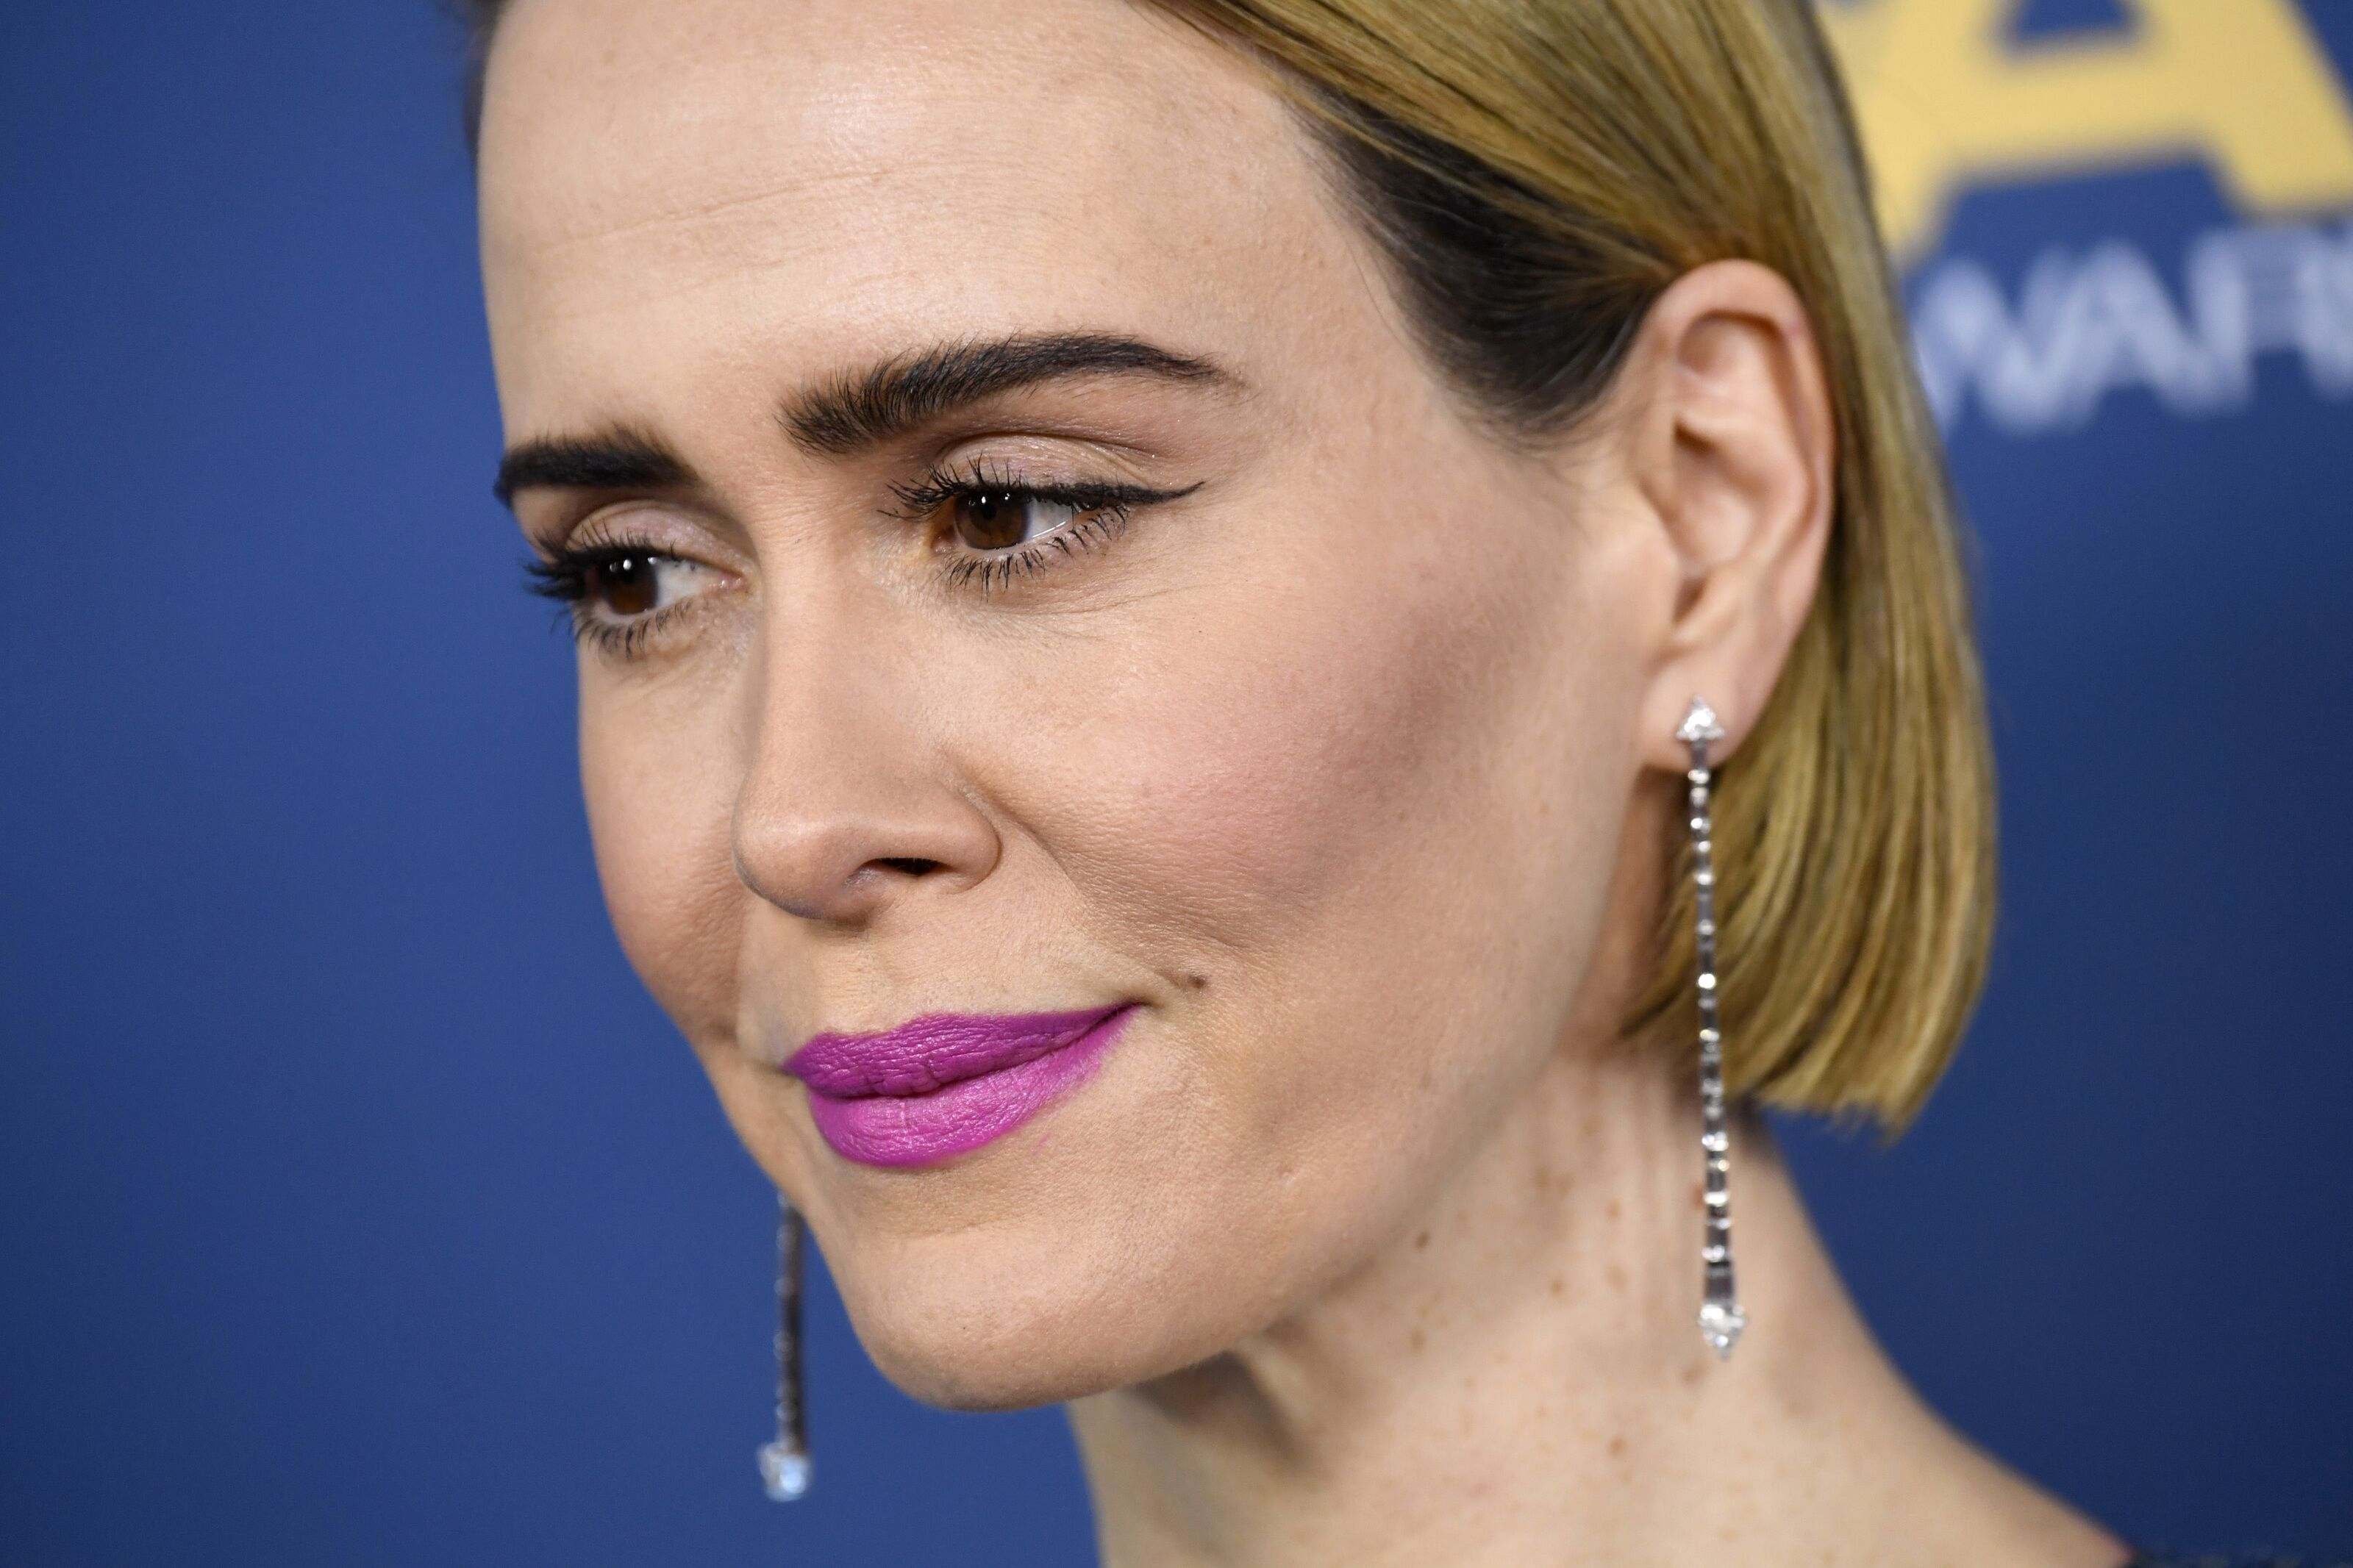 What is Sarah Paulson's mystery role in American Horror Story: 1984?